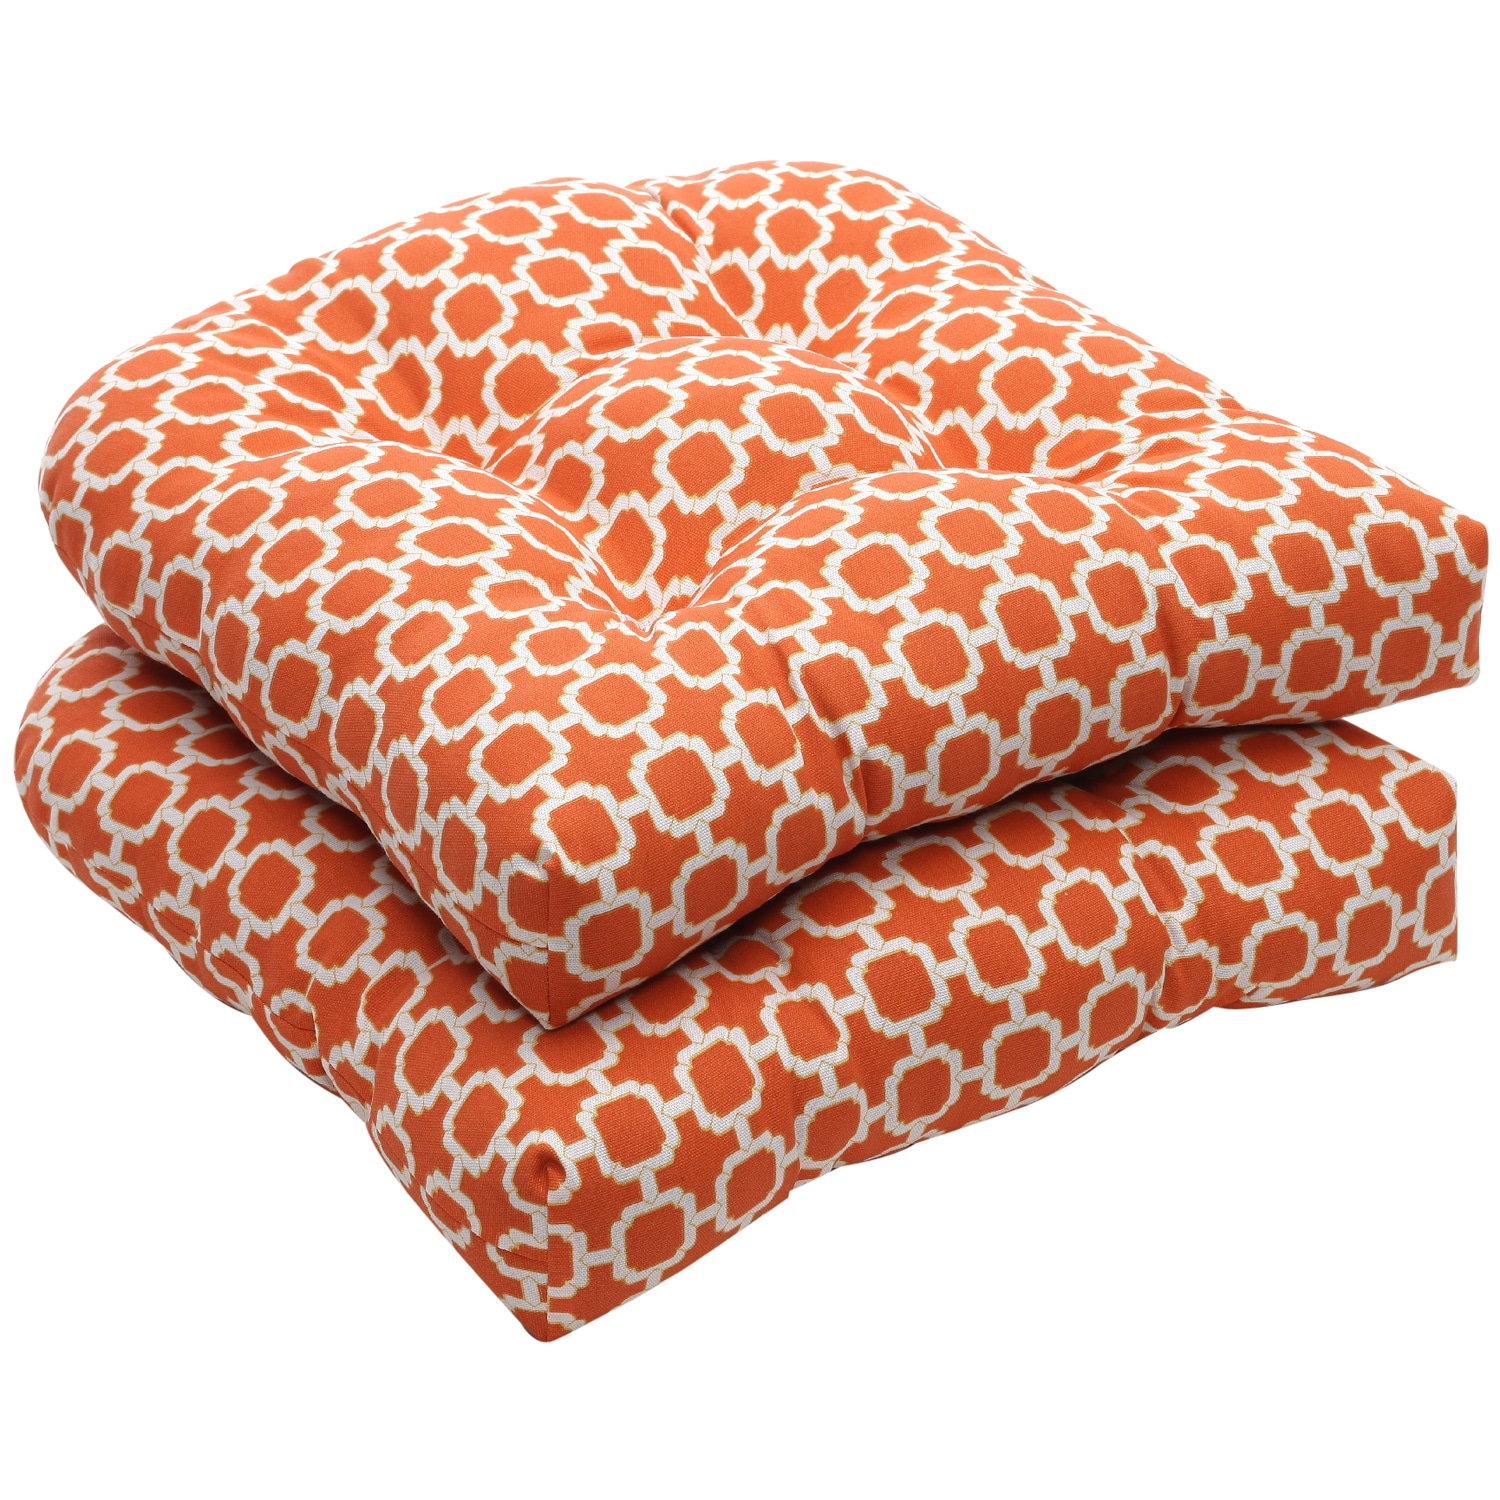 orange wicker chair cushions anti gravity table pillow perfect outdoor geometric white seat